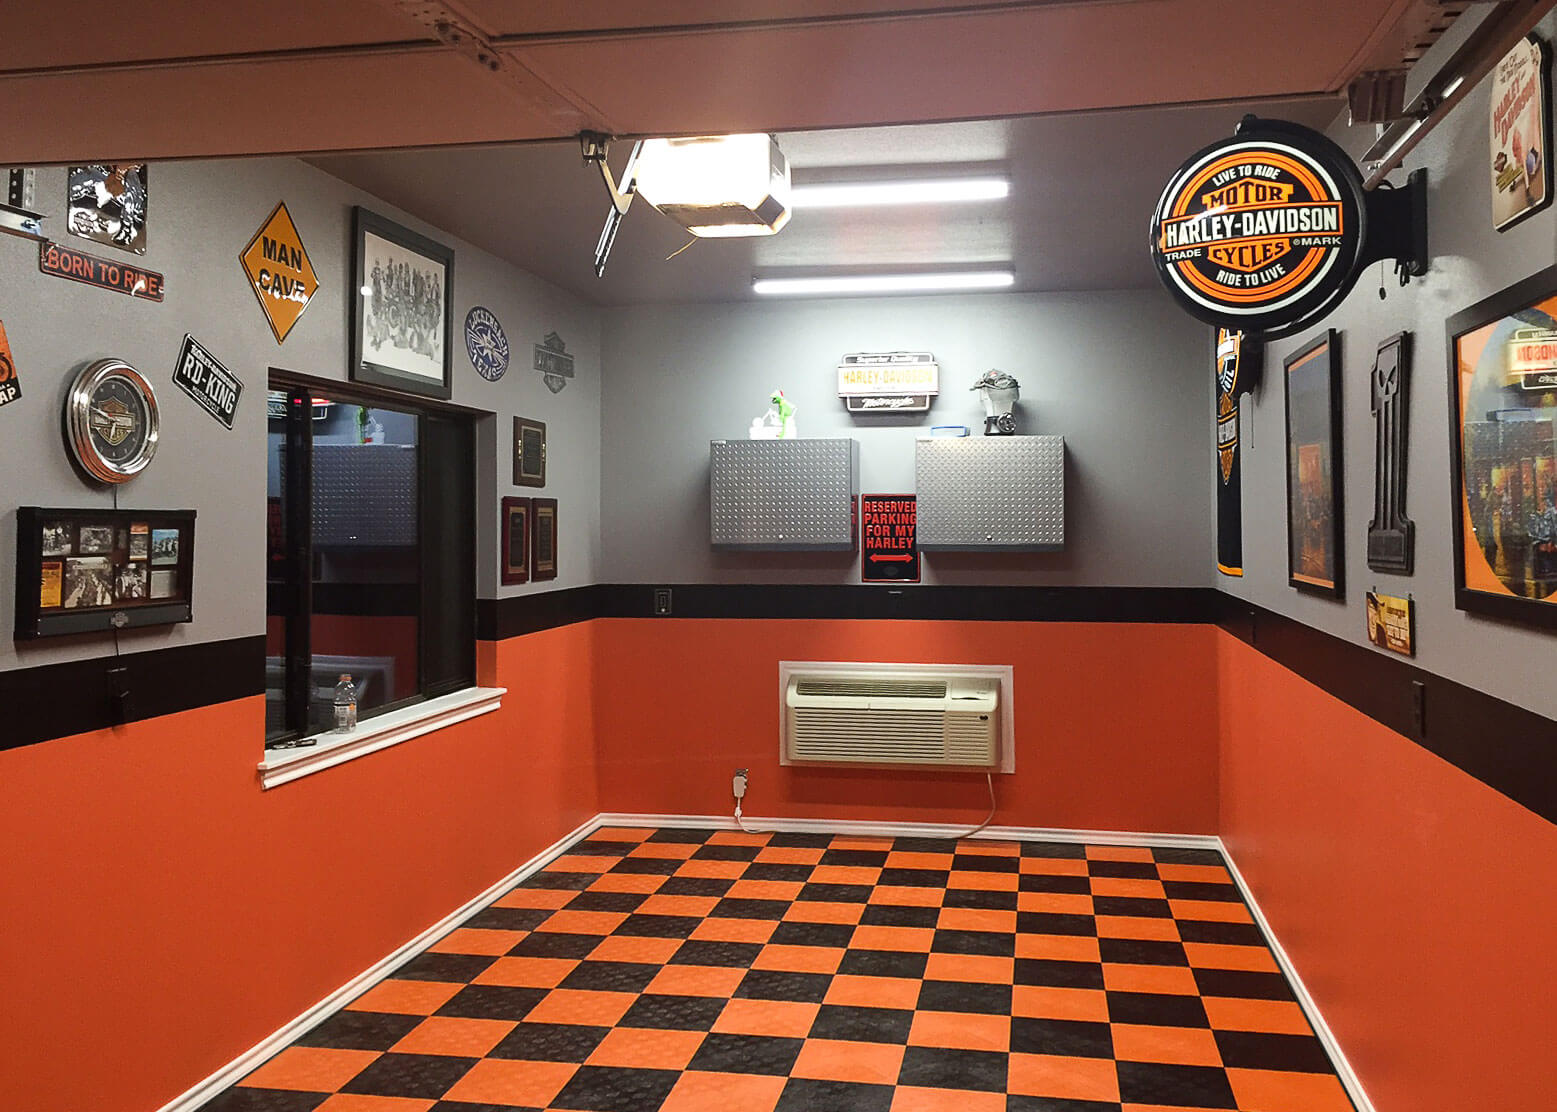 Harley davidson garage flooring a small harley themed garage dailygadgetfo Choice Image